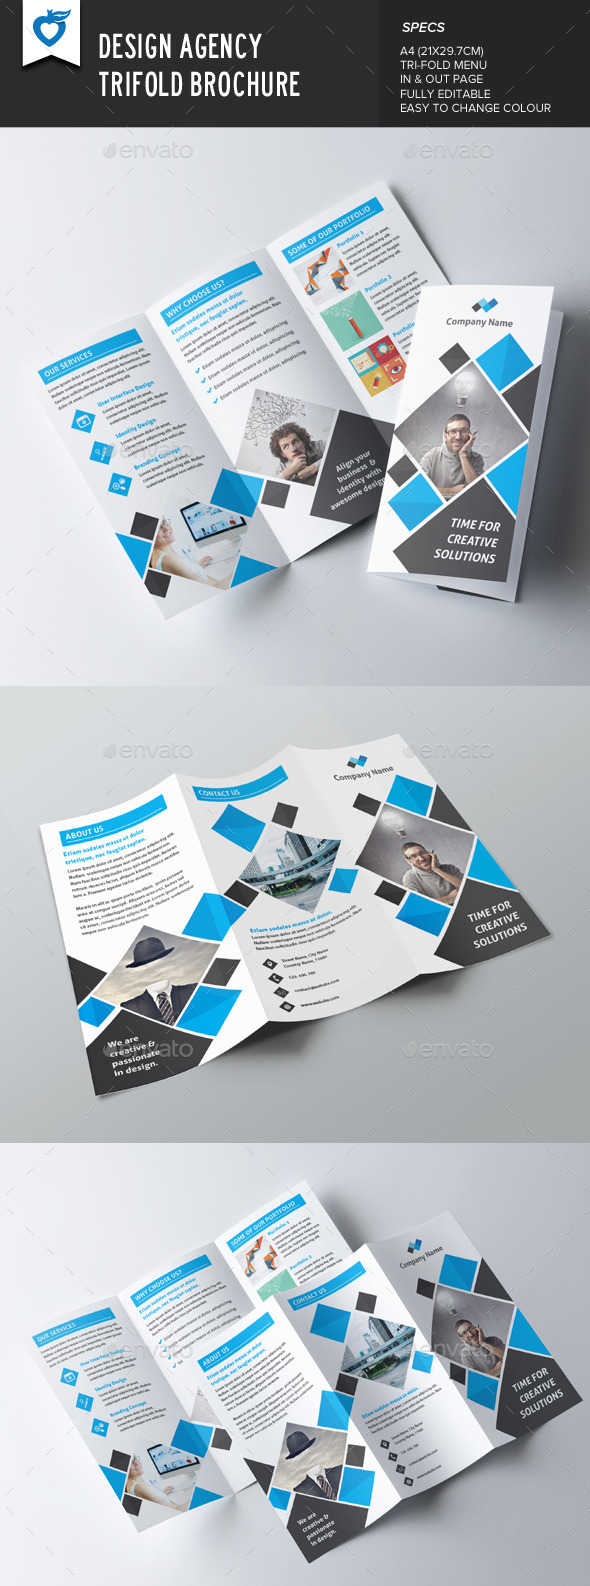 GraphicRiver Design Agency Trifold Brochure 9771792